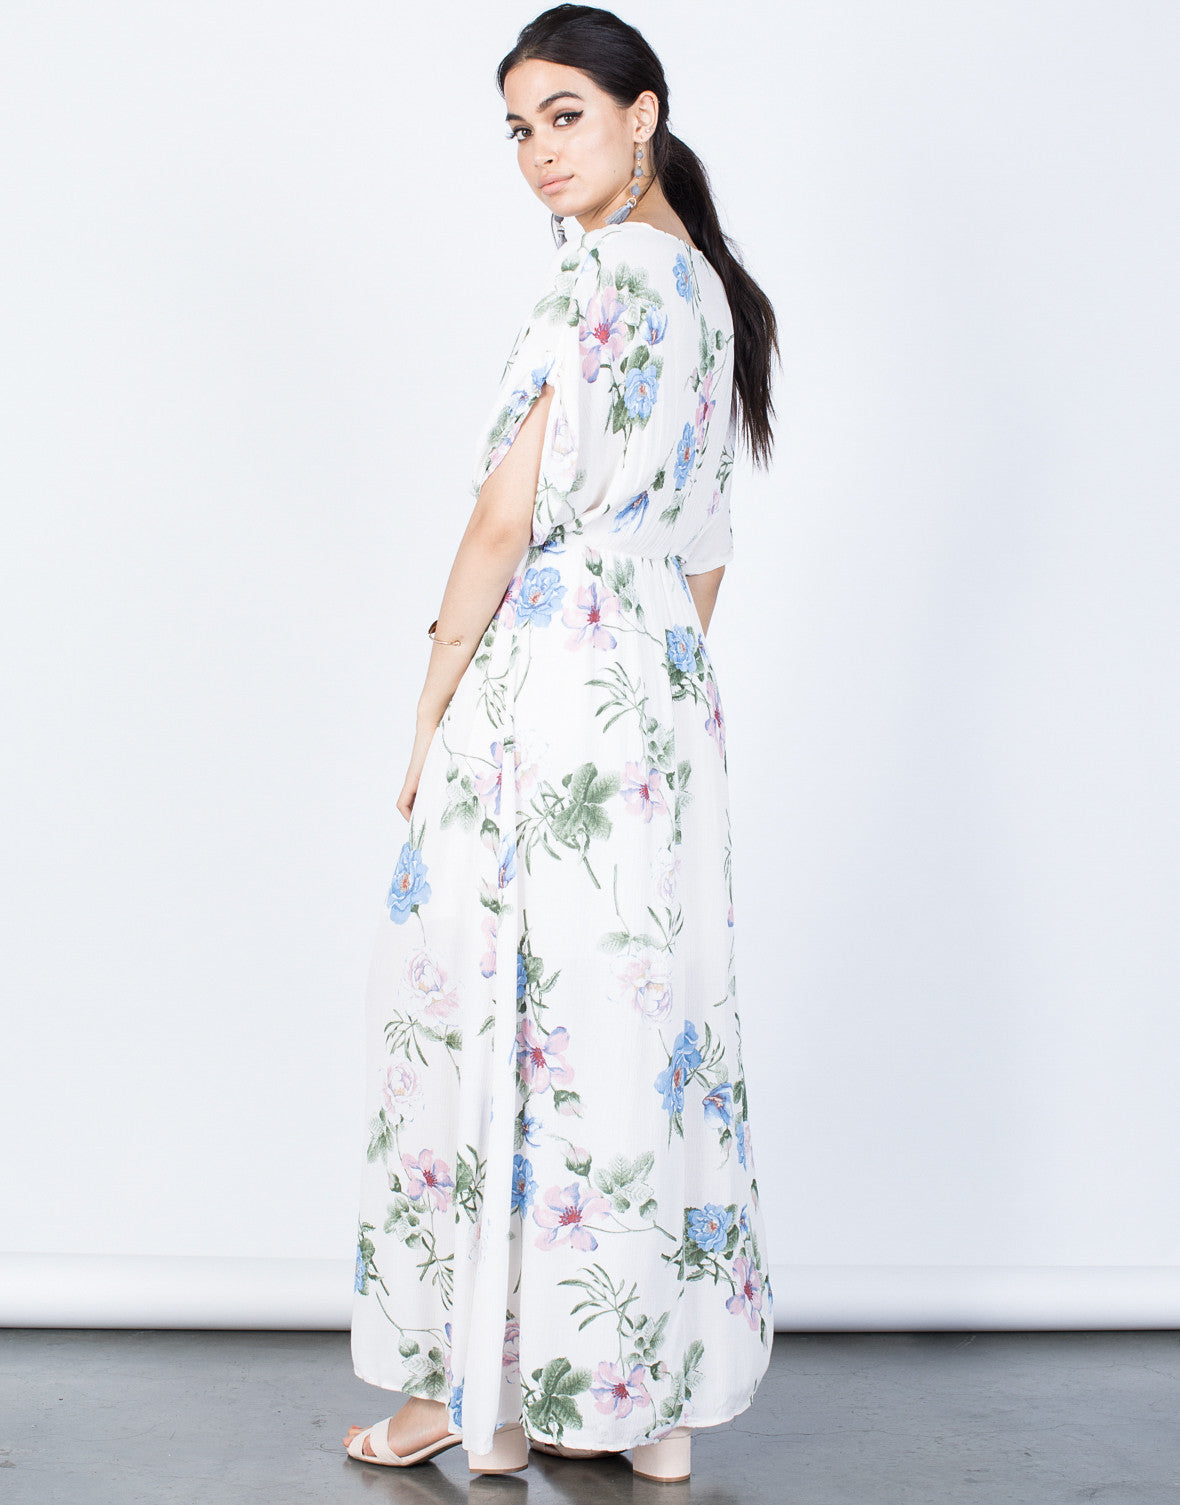 Back View of Blossoming Floral Dress